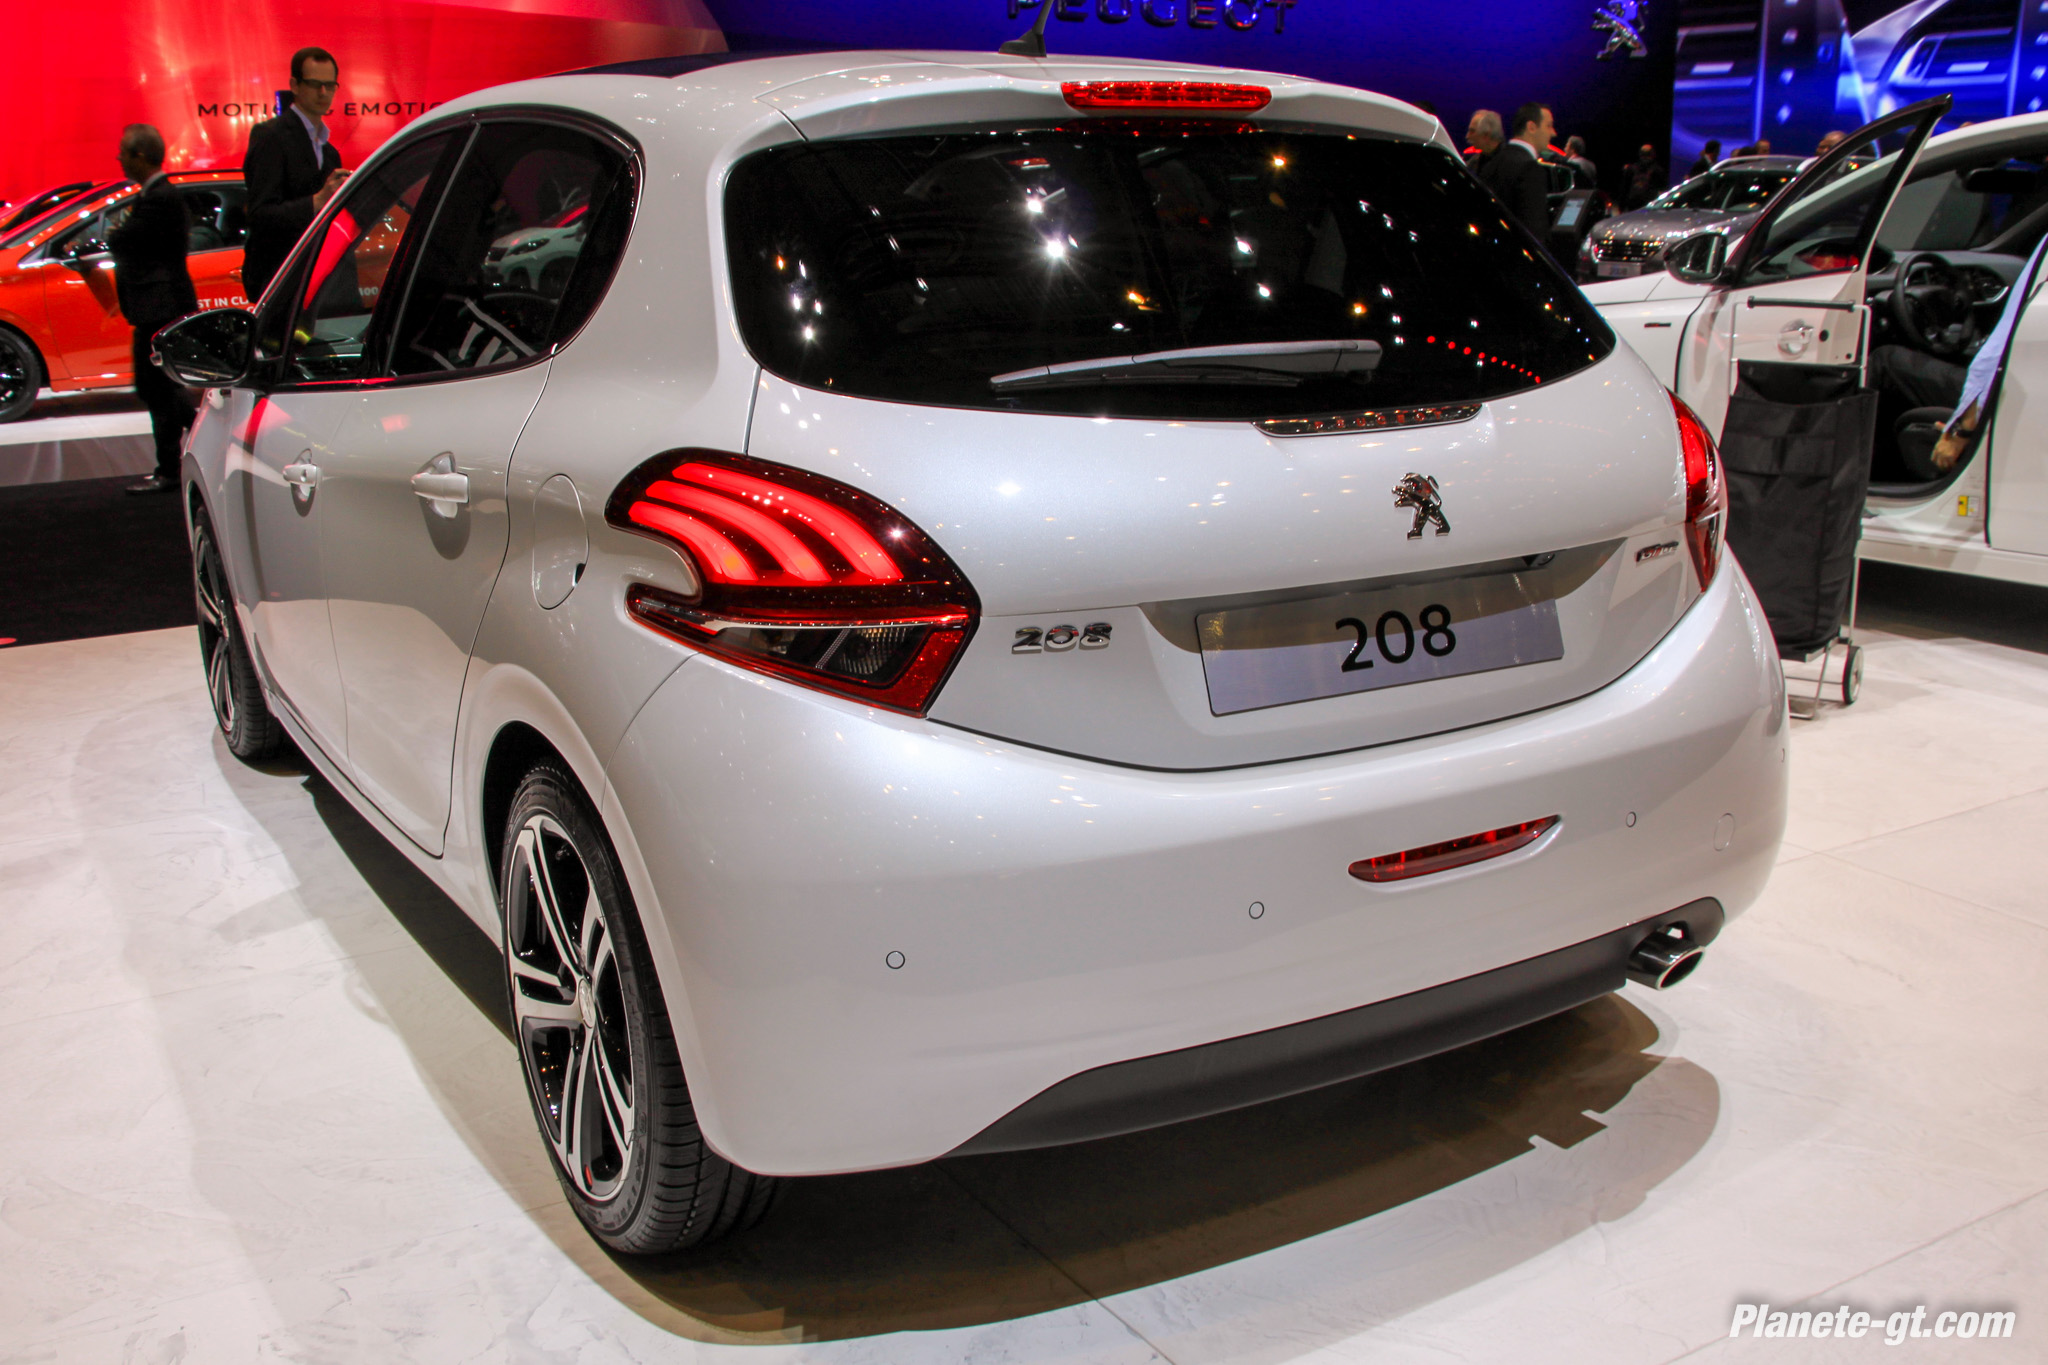 peugeot 208 gt line photos d taill es en live gen ve plan te. Black Bedroom Furniture Sets. Home Design Ideas